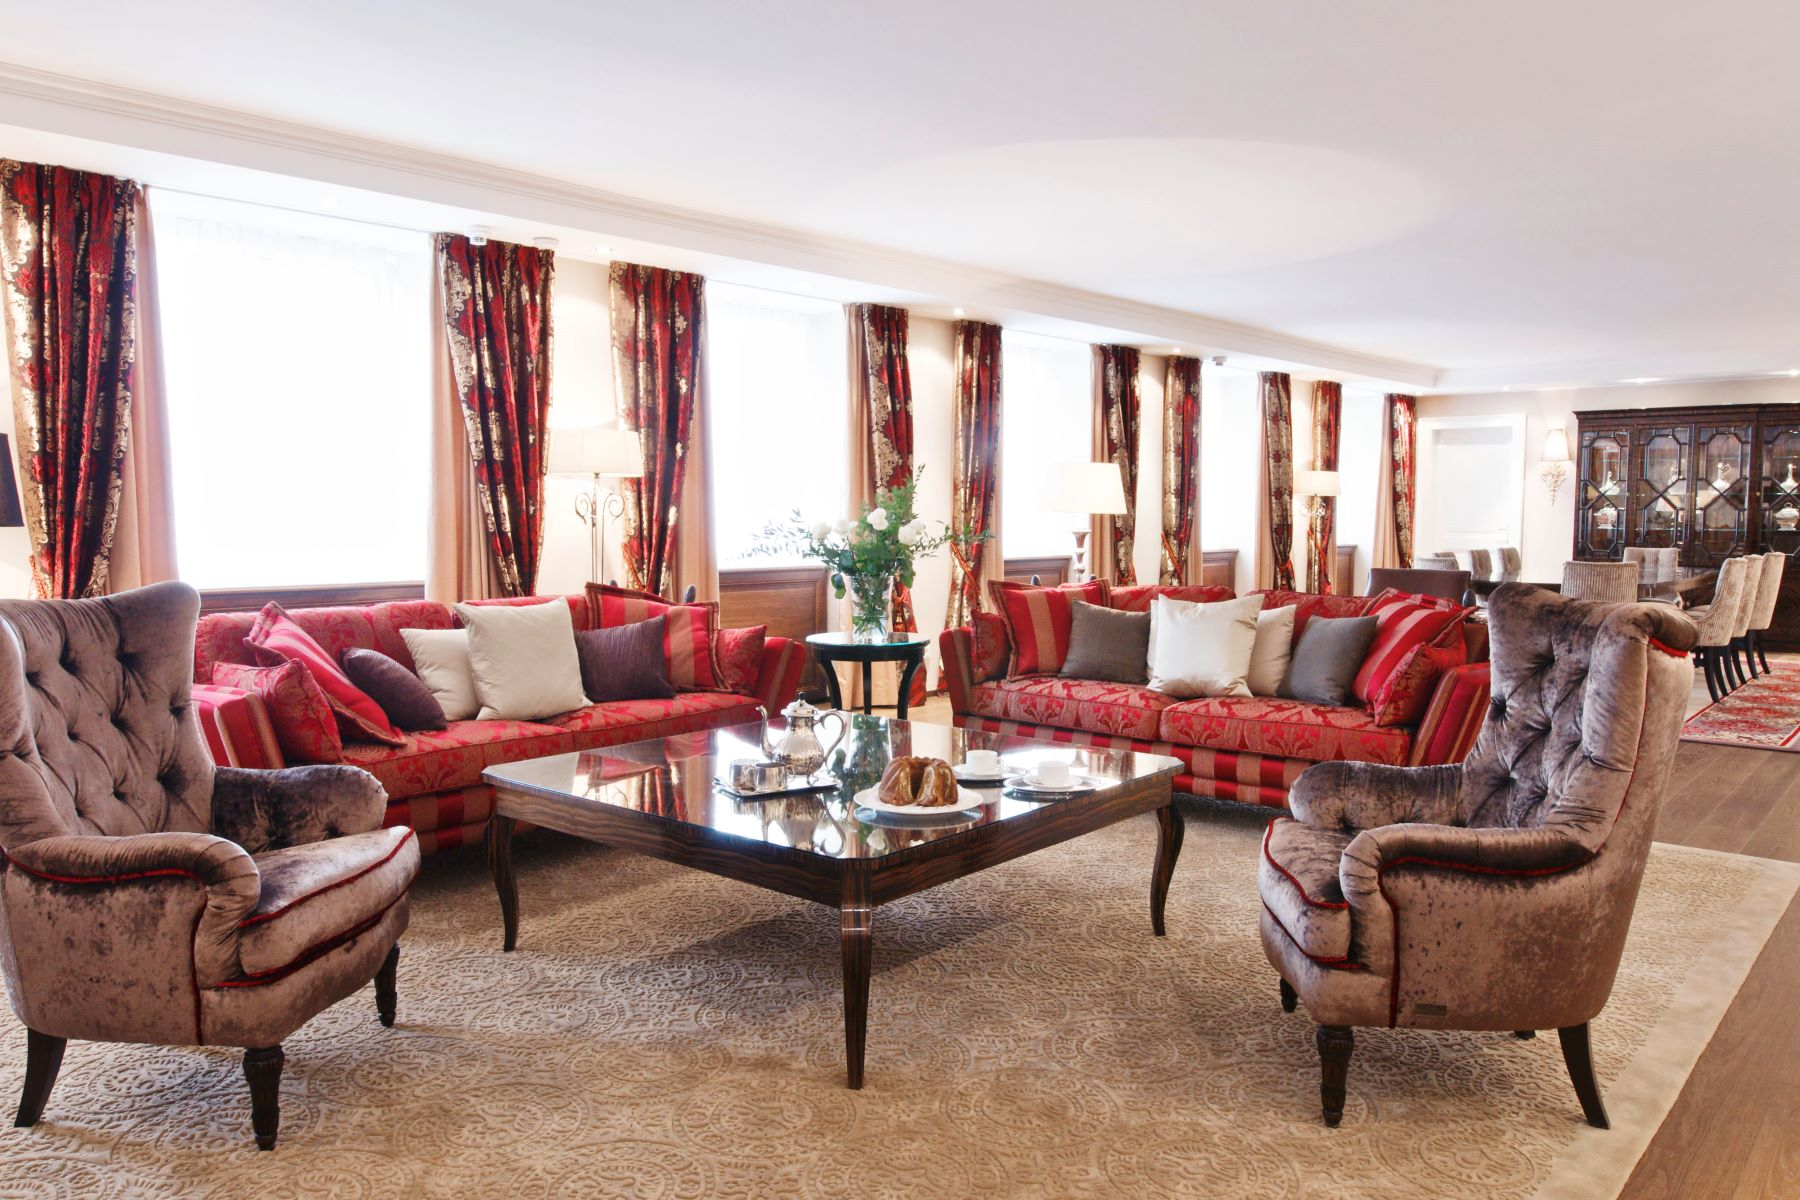 Apartment for Sale at DELUXE 6 BED APARTMENT Vienna, Vienna, 1010 Austria